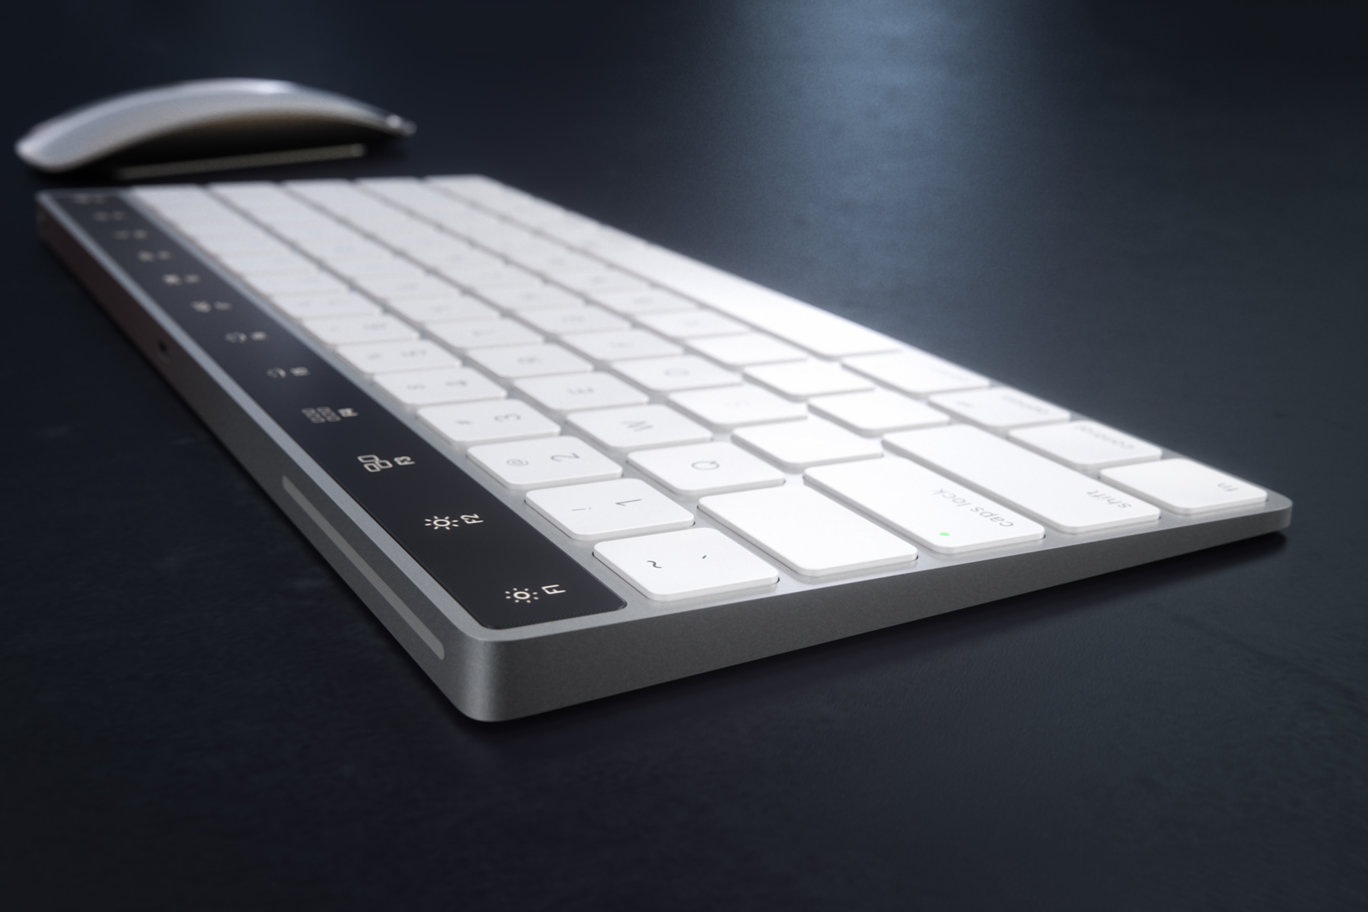 IMAC Keyboard with OLED Touch Bard 5